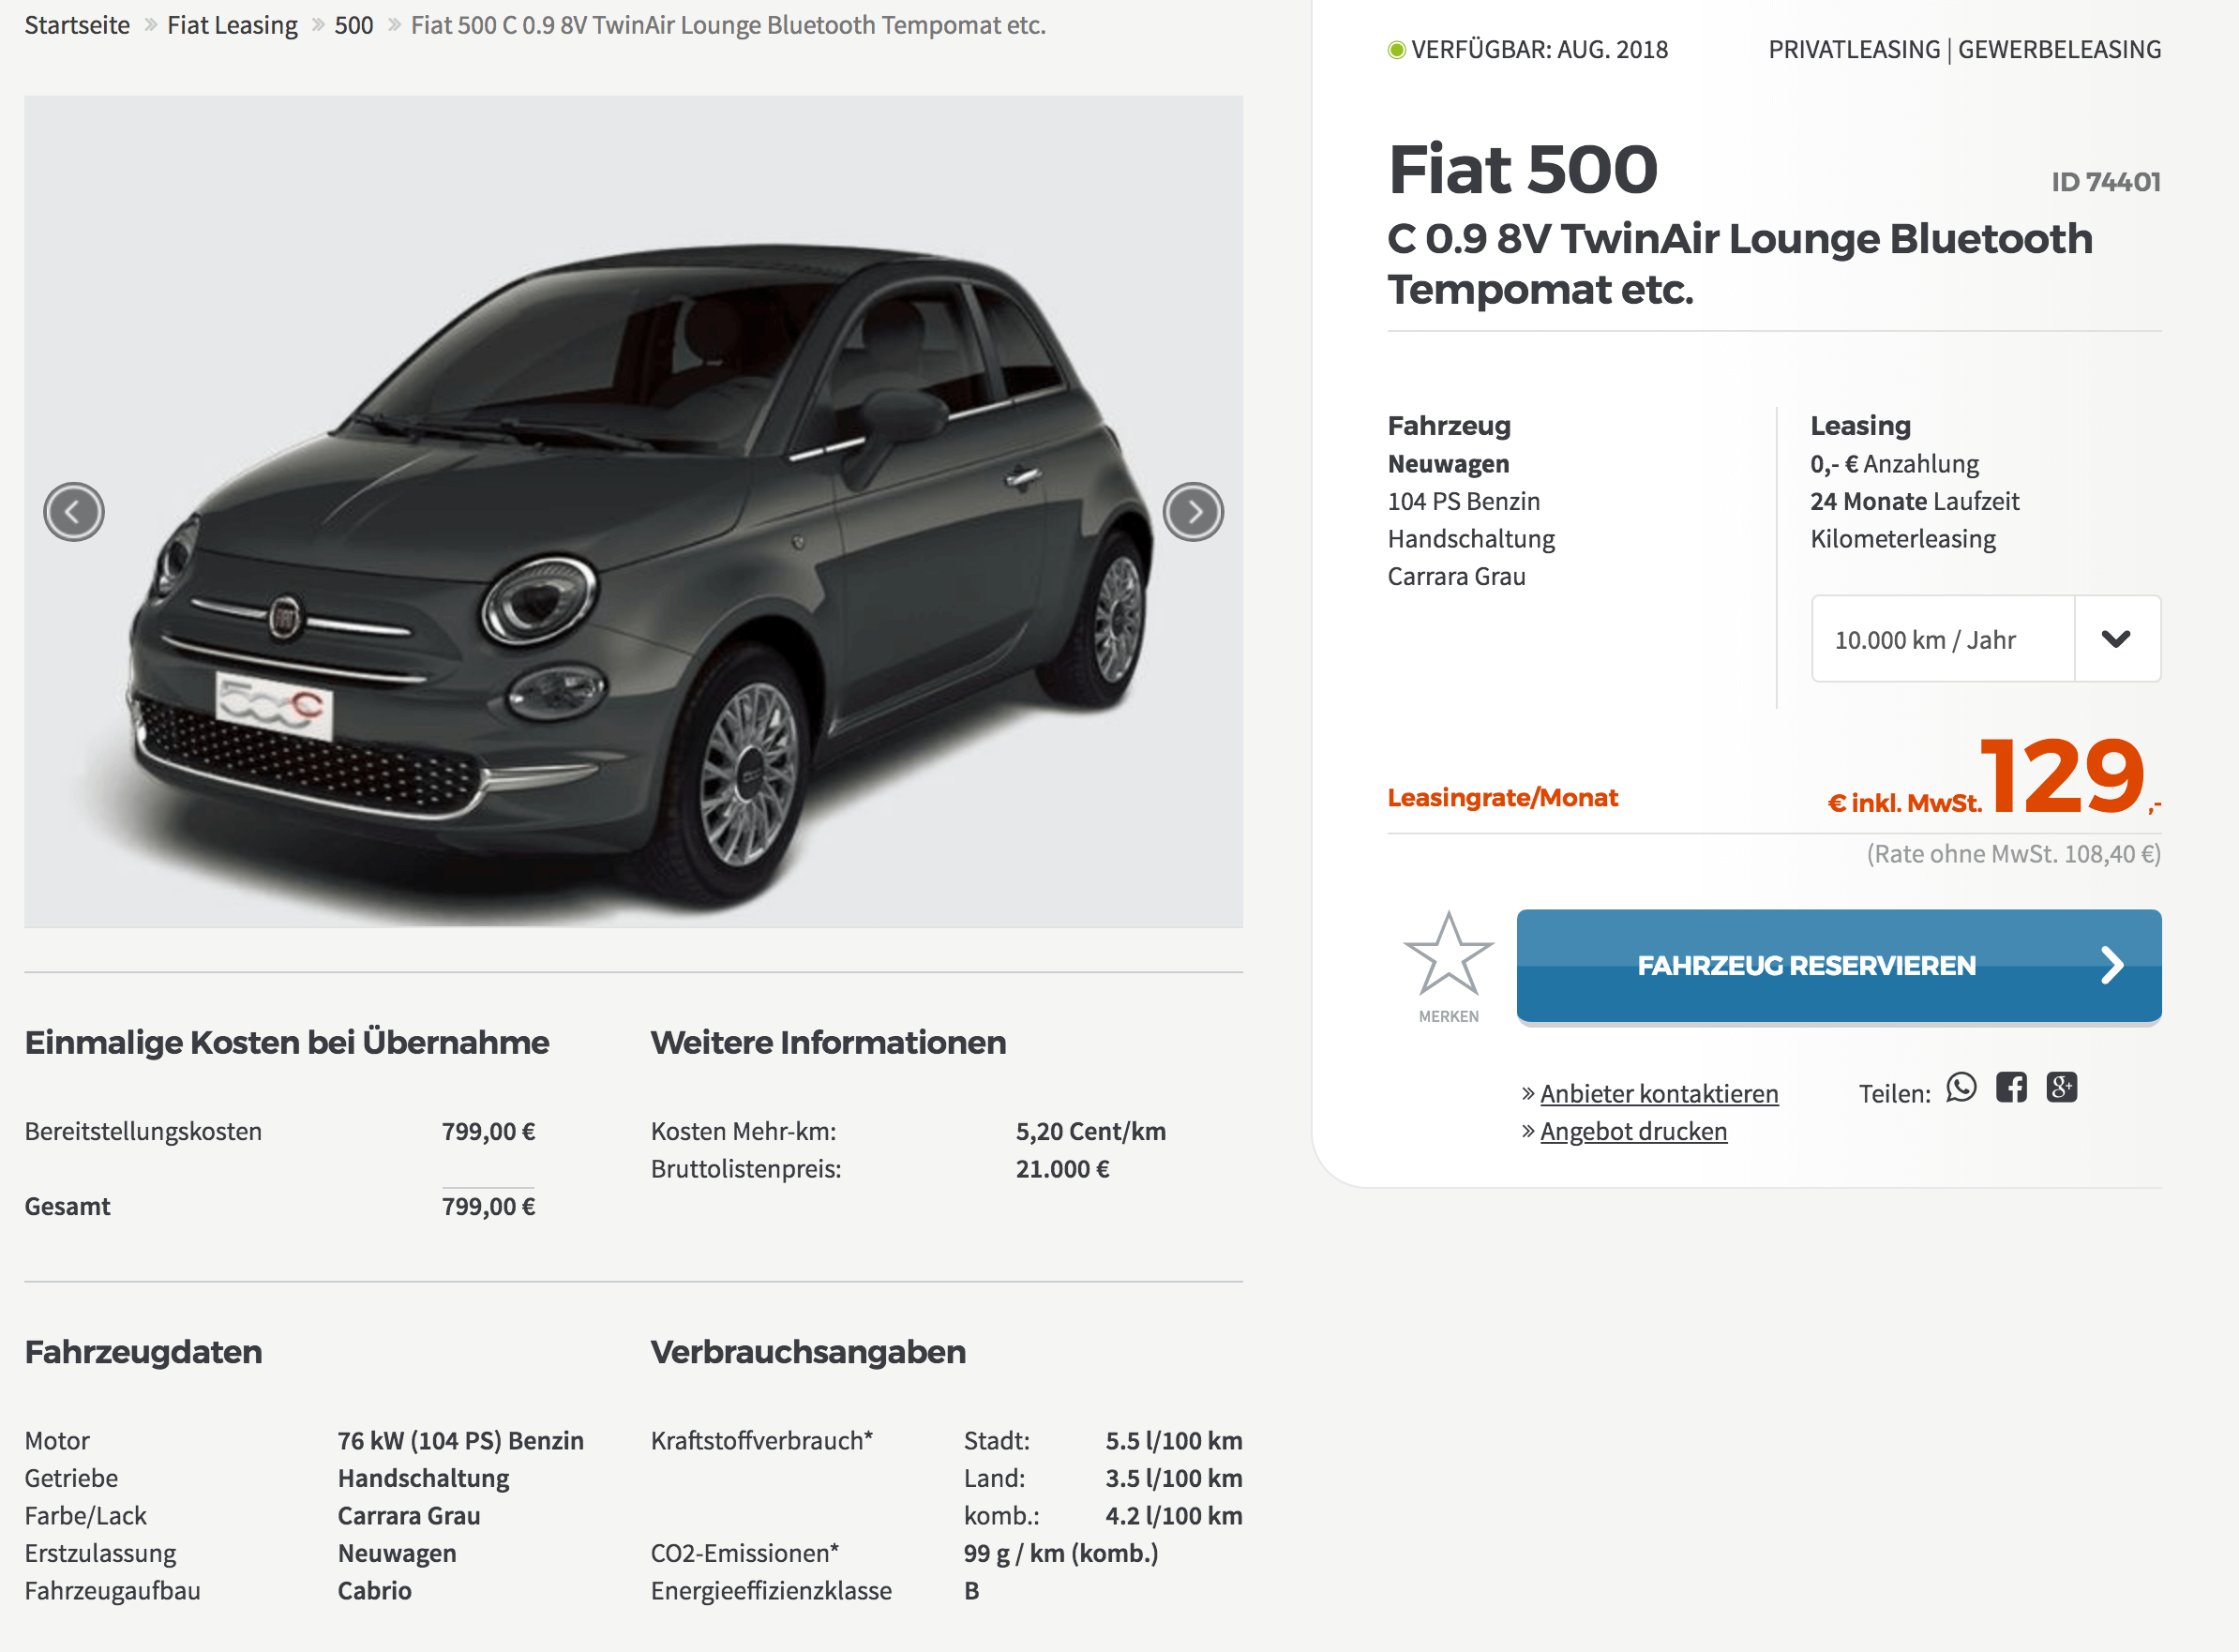 fiat 500 leasing f r 129 euro im monat brutto. Black Bedroom Furniture Sets. Home Design Ideas